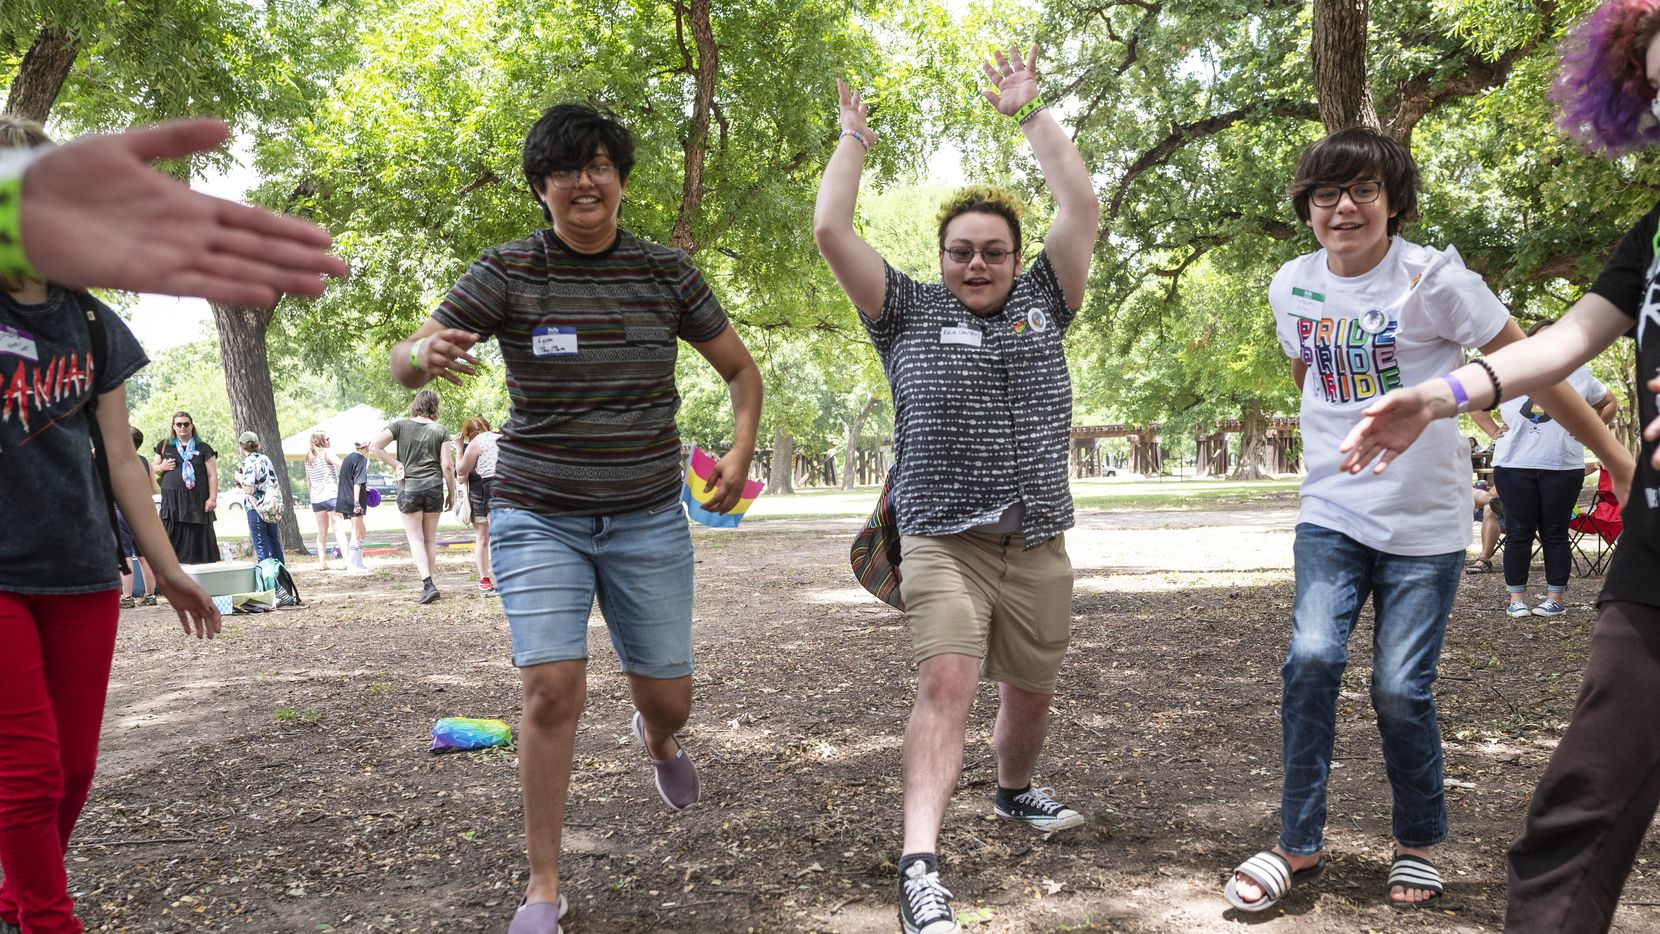 Lyssa Alvarado, 23, left, Kairo Donahue, 17, and Taylor Masterson, 13, right, play a game during the LGBTQ SAVES (Students, Allies, Volunteers, Educators, Support) Summer Camp CommUNITY Picnic at Trinity Park in Fort Worth on June 26.